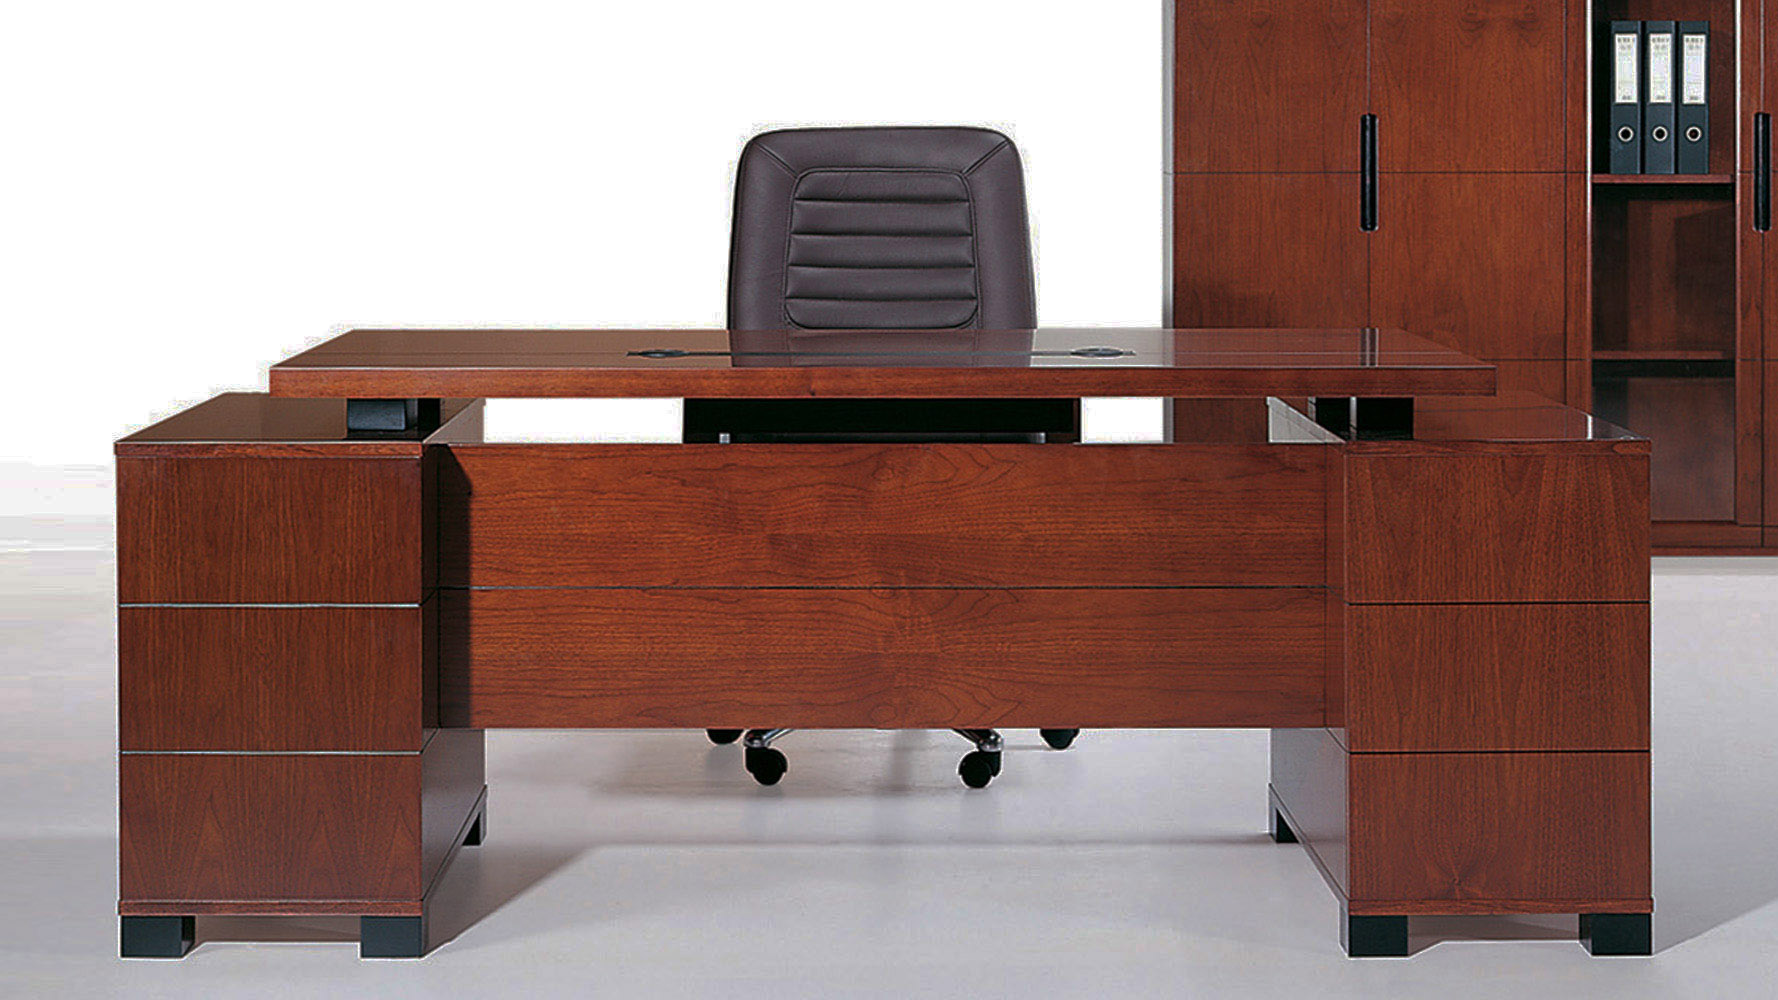 ford executive modern desk with filing cabinets  light wood  - ford executive modern desk with filing cabinets  light wood finish  zurifurniture